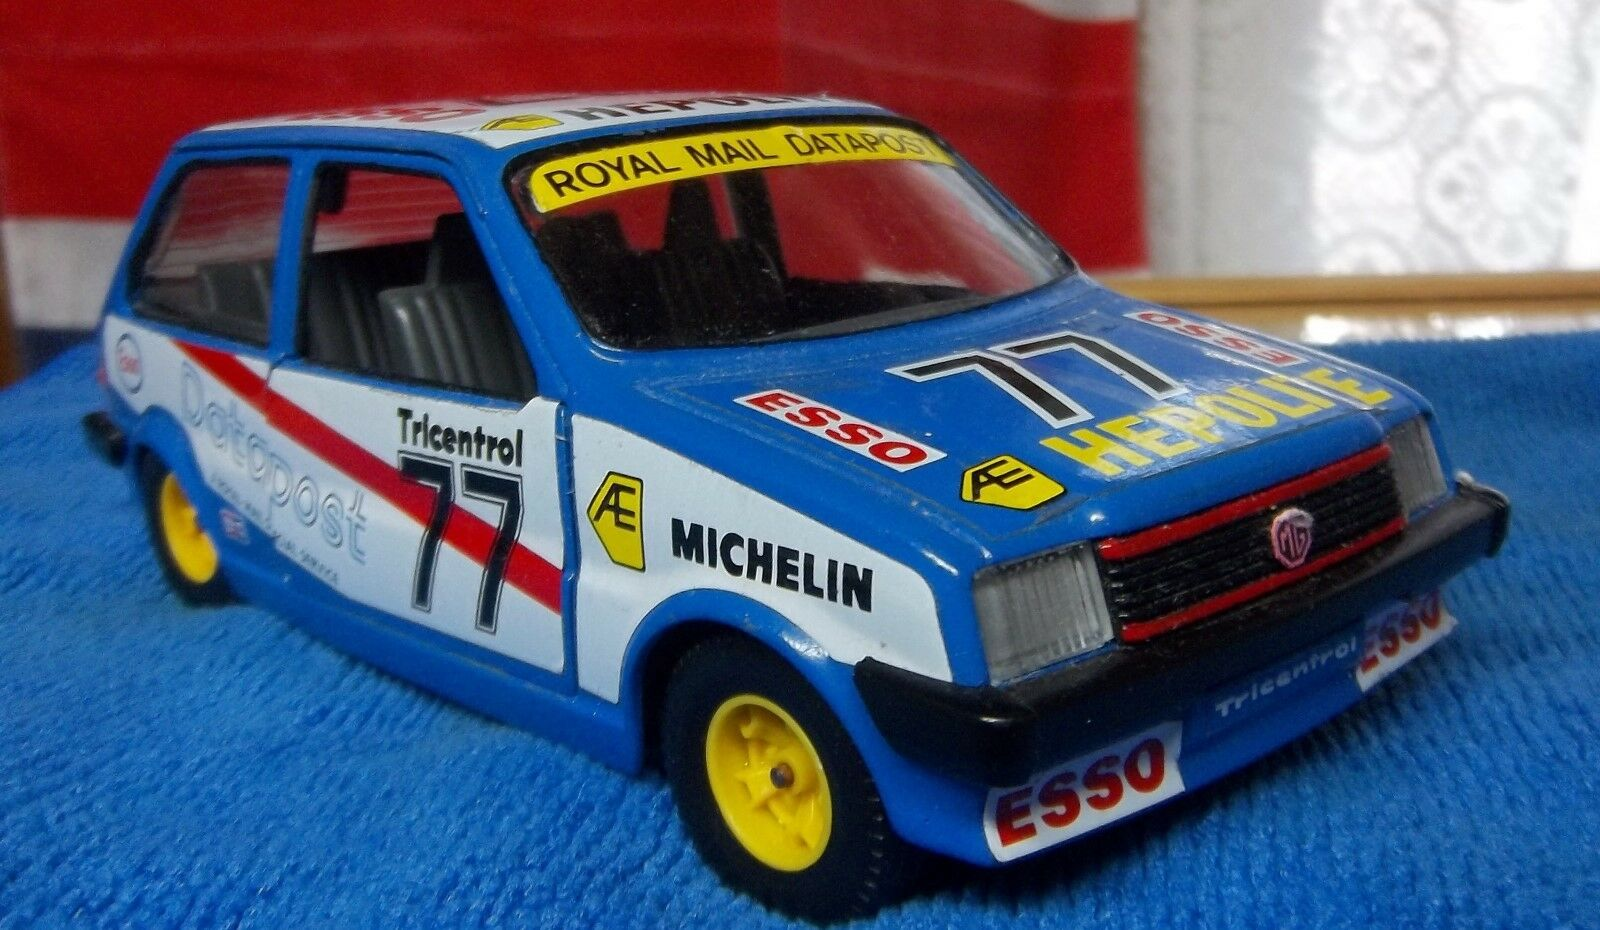 MG METRO ROYAL MAIL SPECIAL 1 24 SCALE 6  A+ NICE CONDITION OPENING DOORS,LID MG